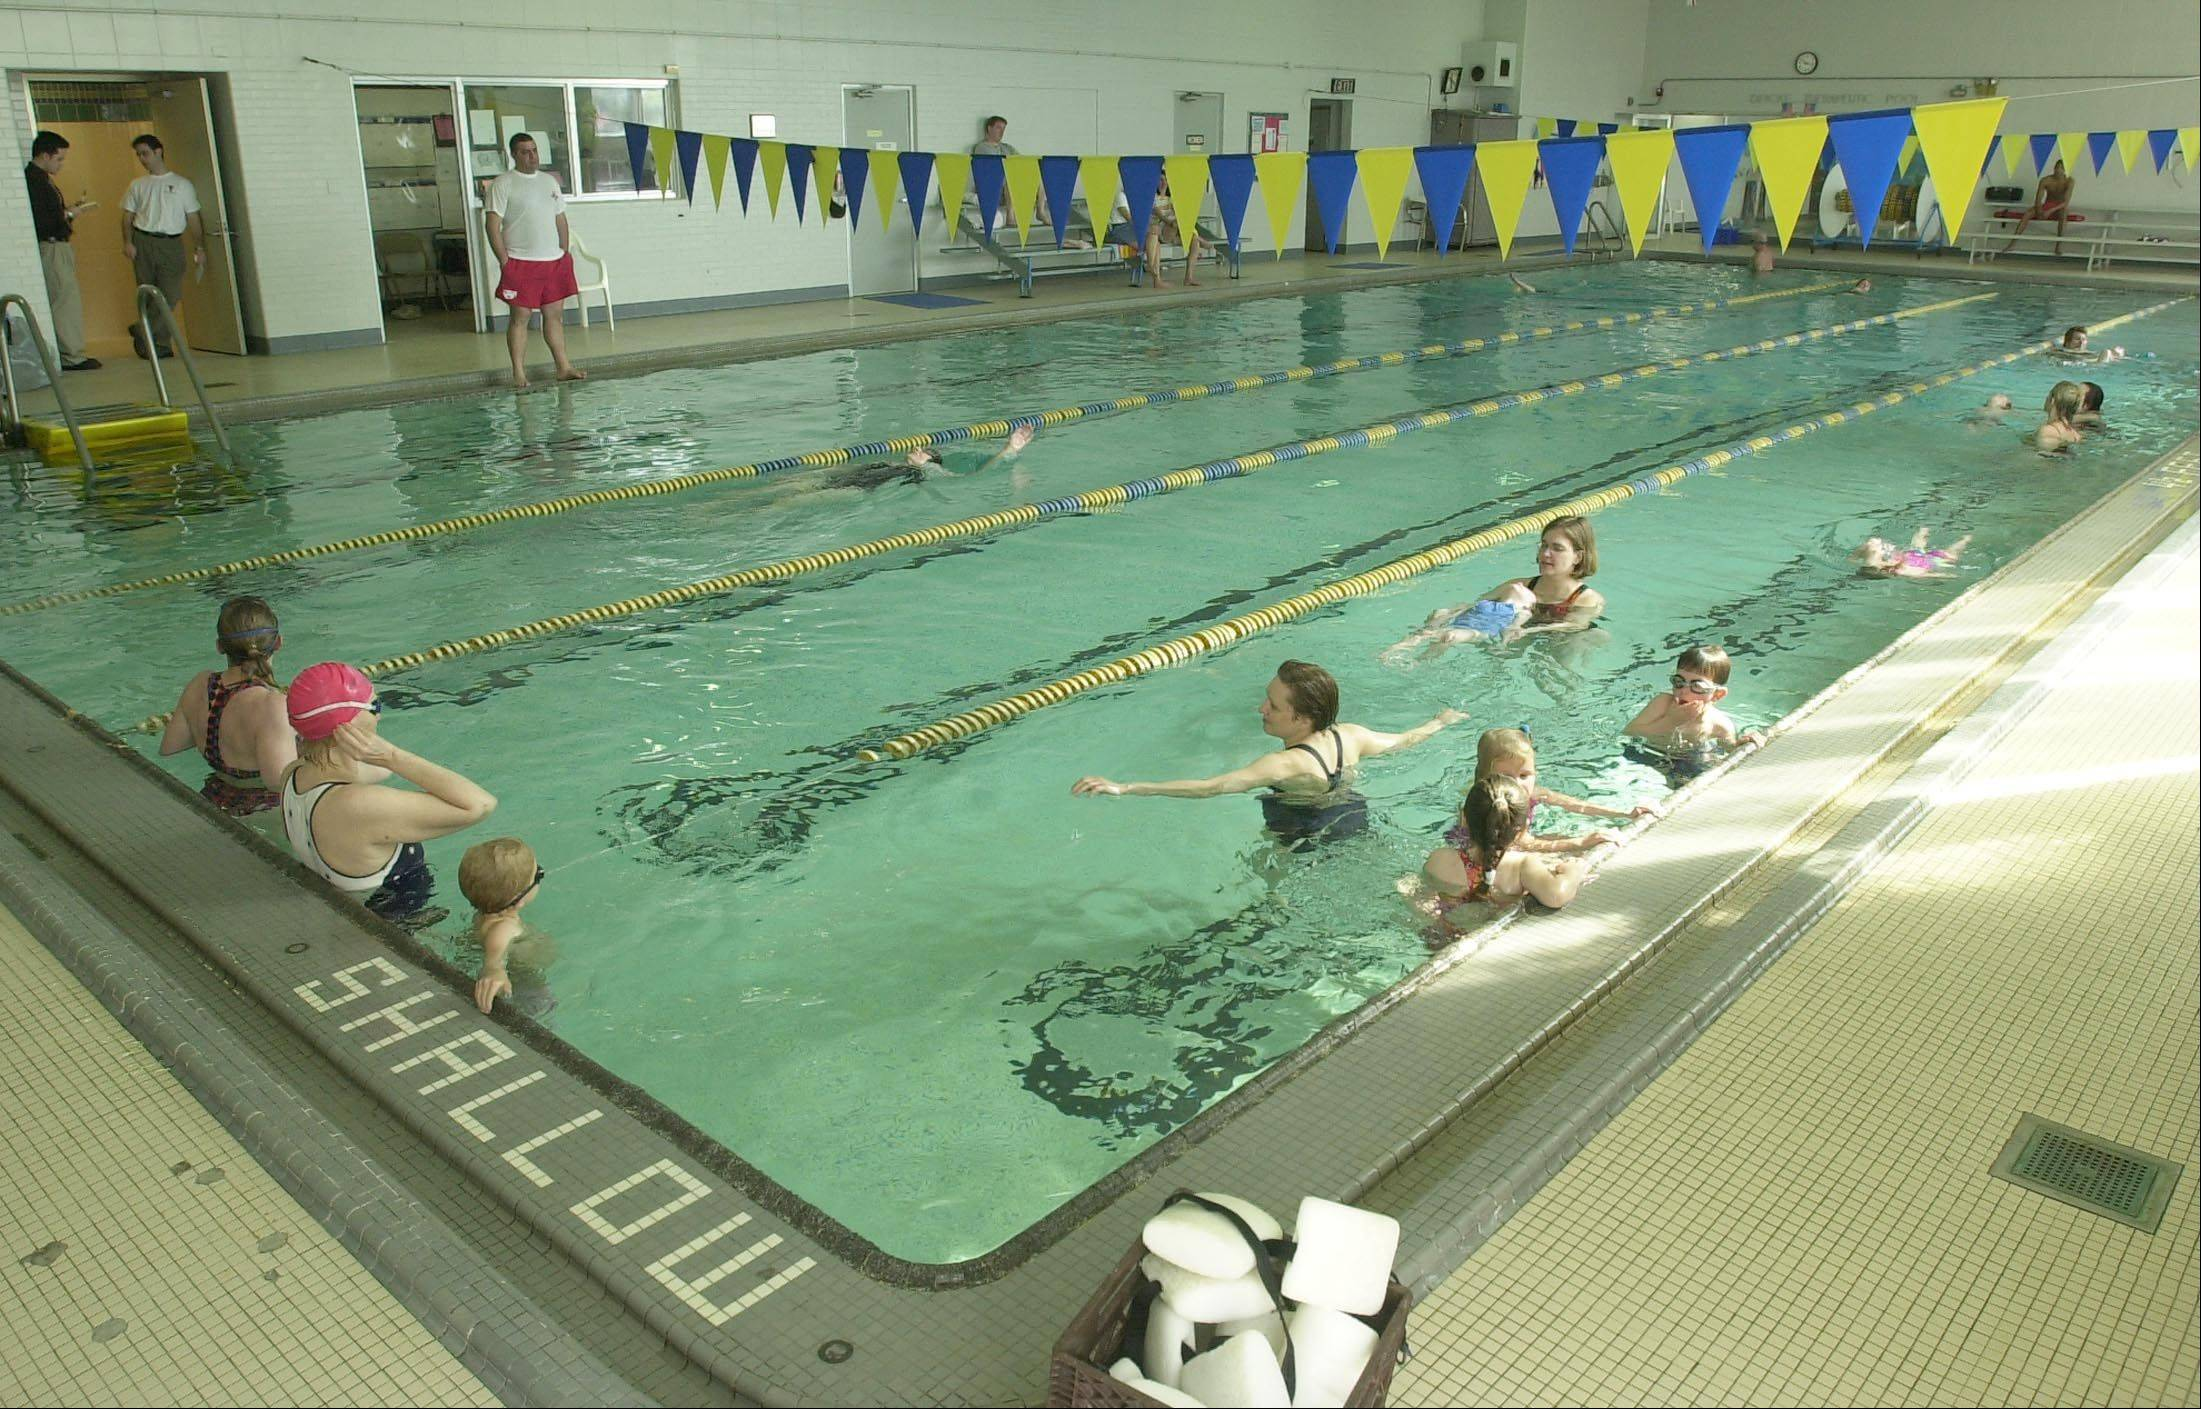 Children and adults can learn to swim at the B.R. Ryall YMCA facility in Glen Ellyn, which also offers a swim team and water fitness.